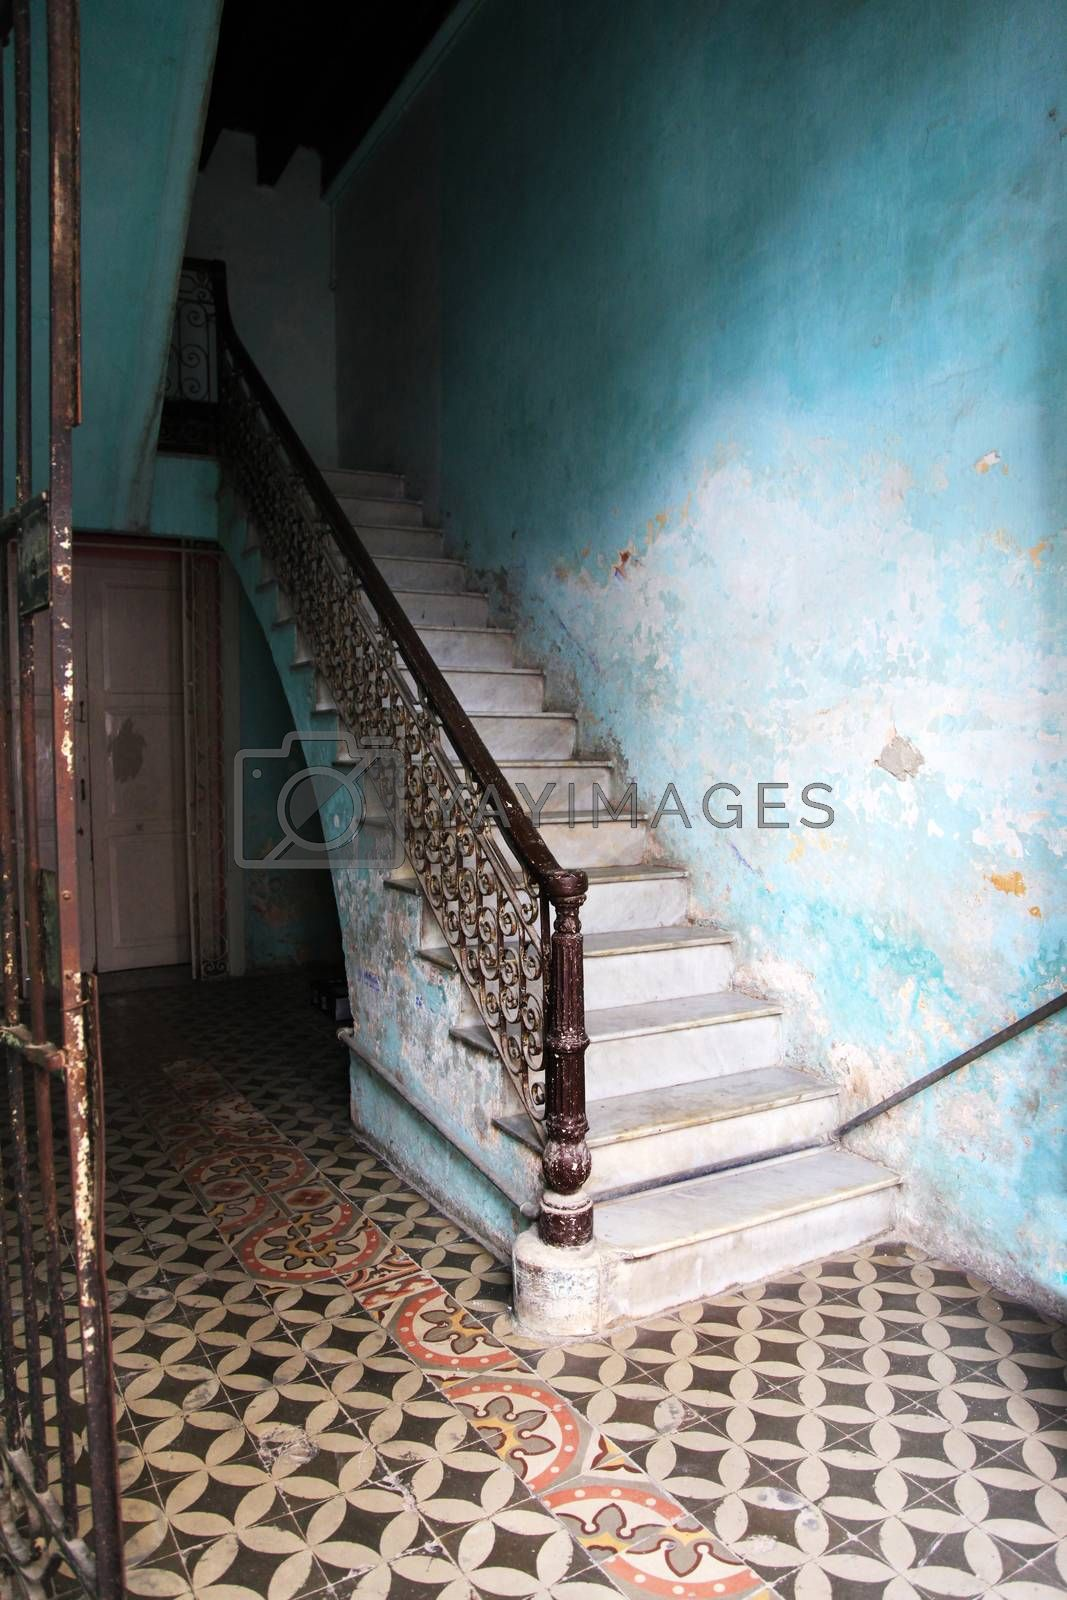 Royalty free image of Staircase in a house in Old Havana, Cuba by friday